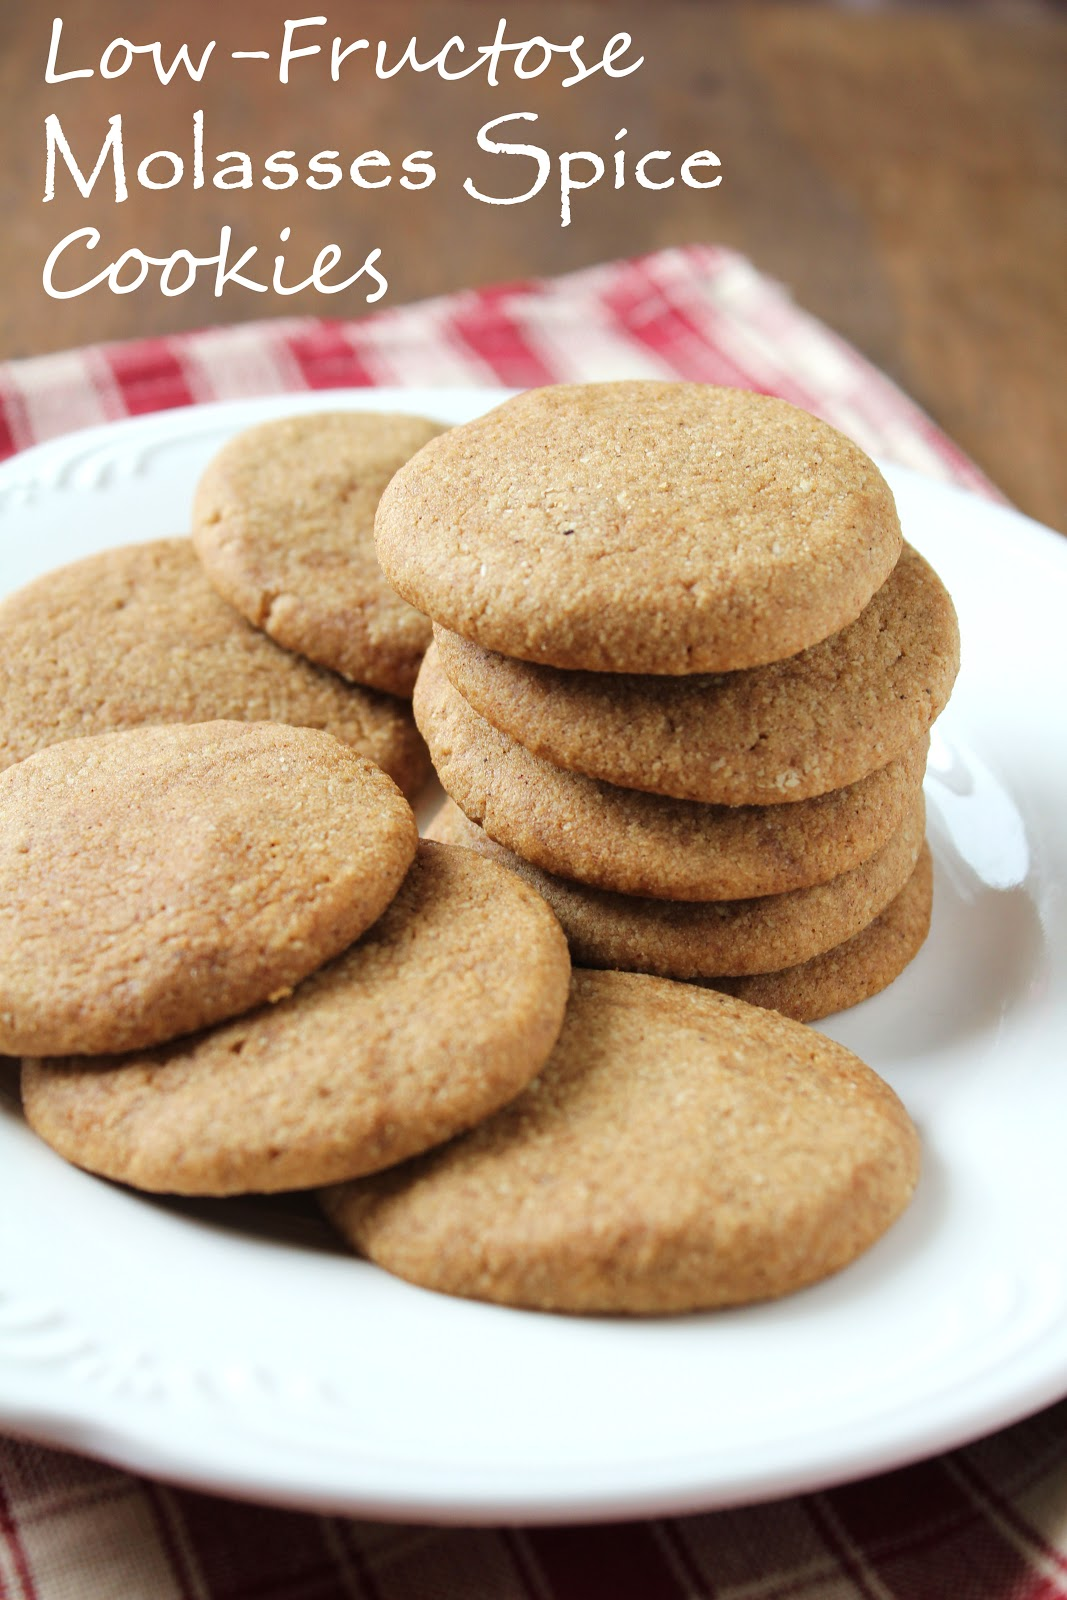 Delicious as it Looks: Low-Fructose Molasses Spice Cookies